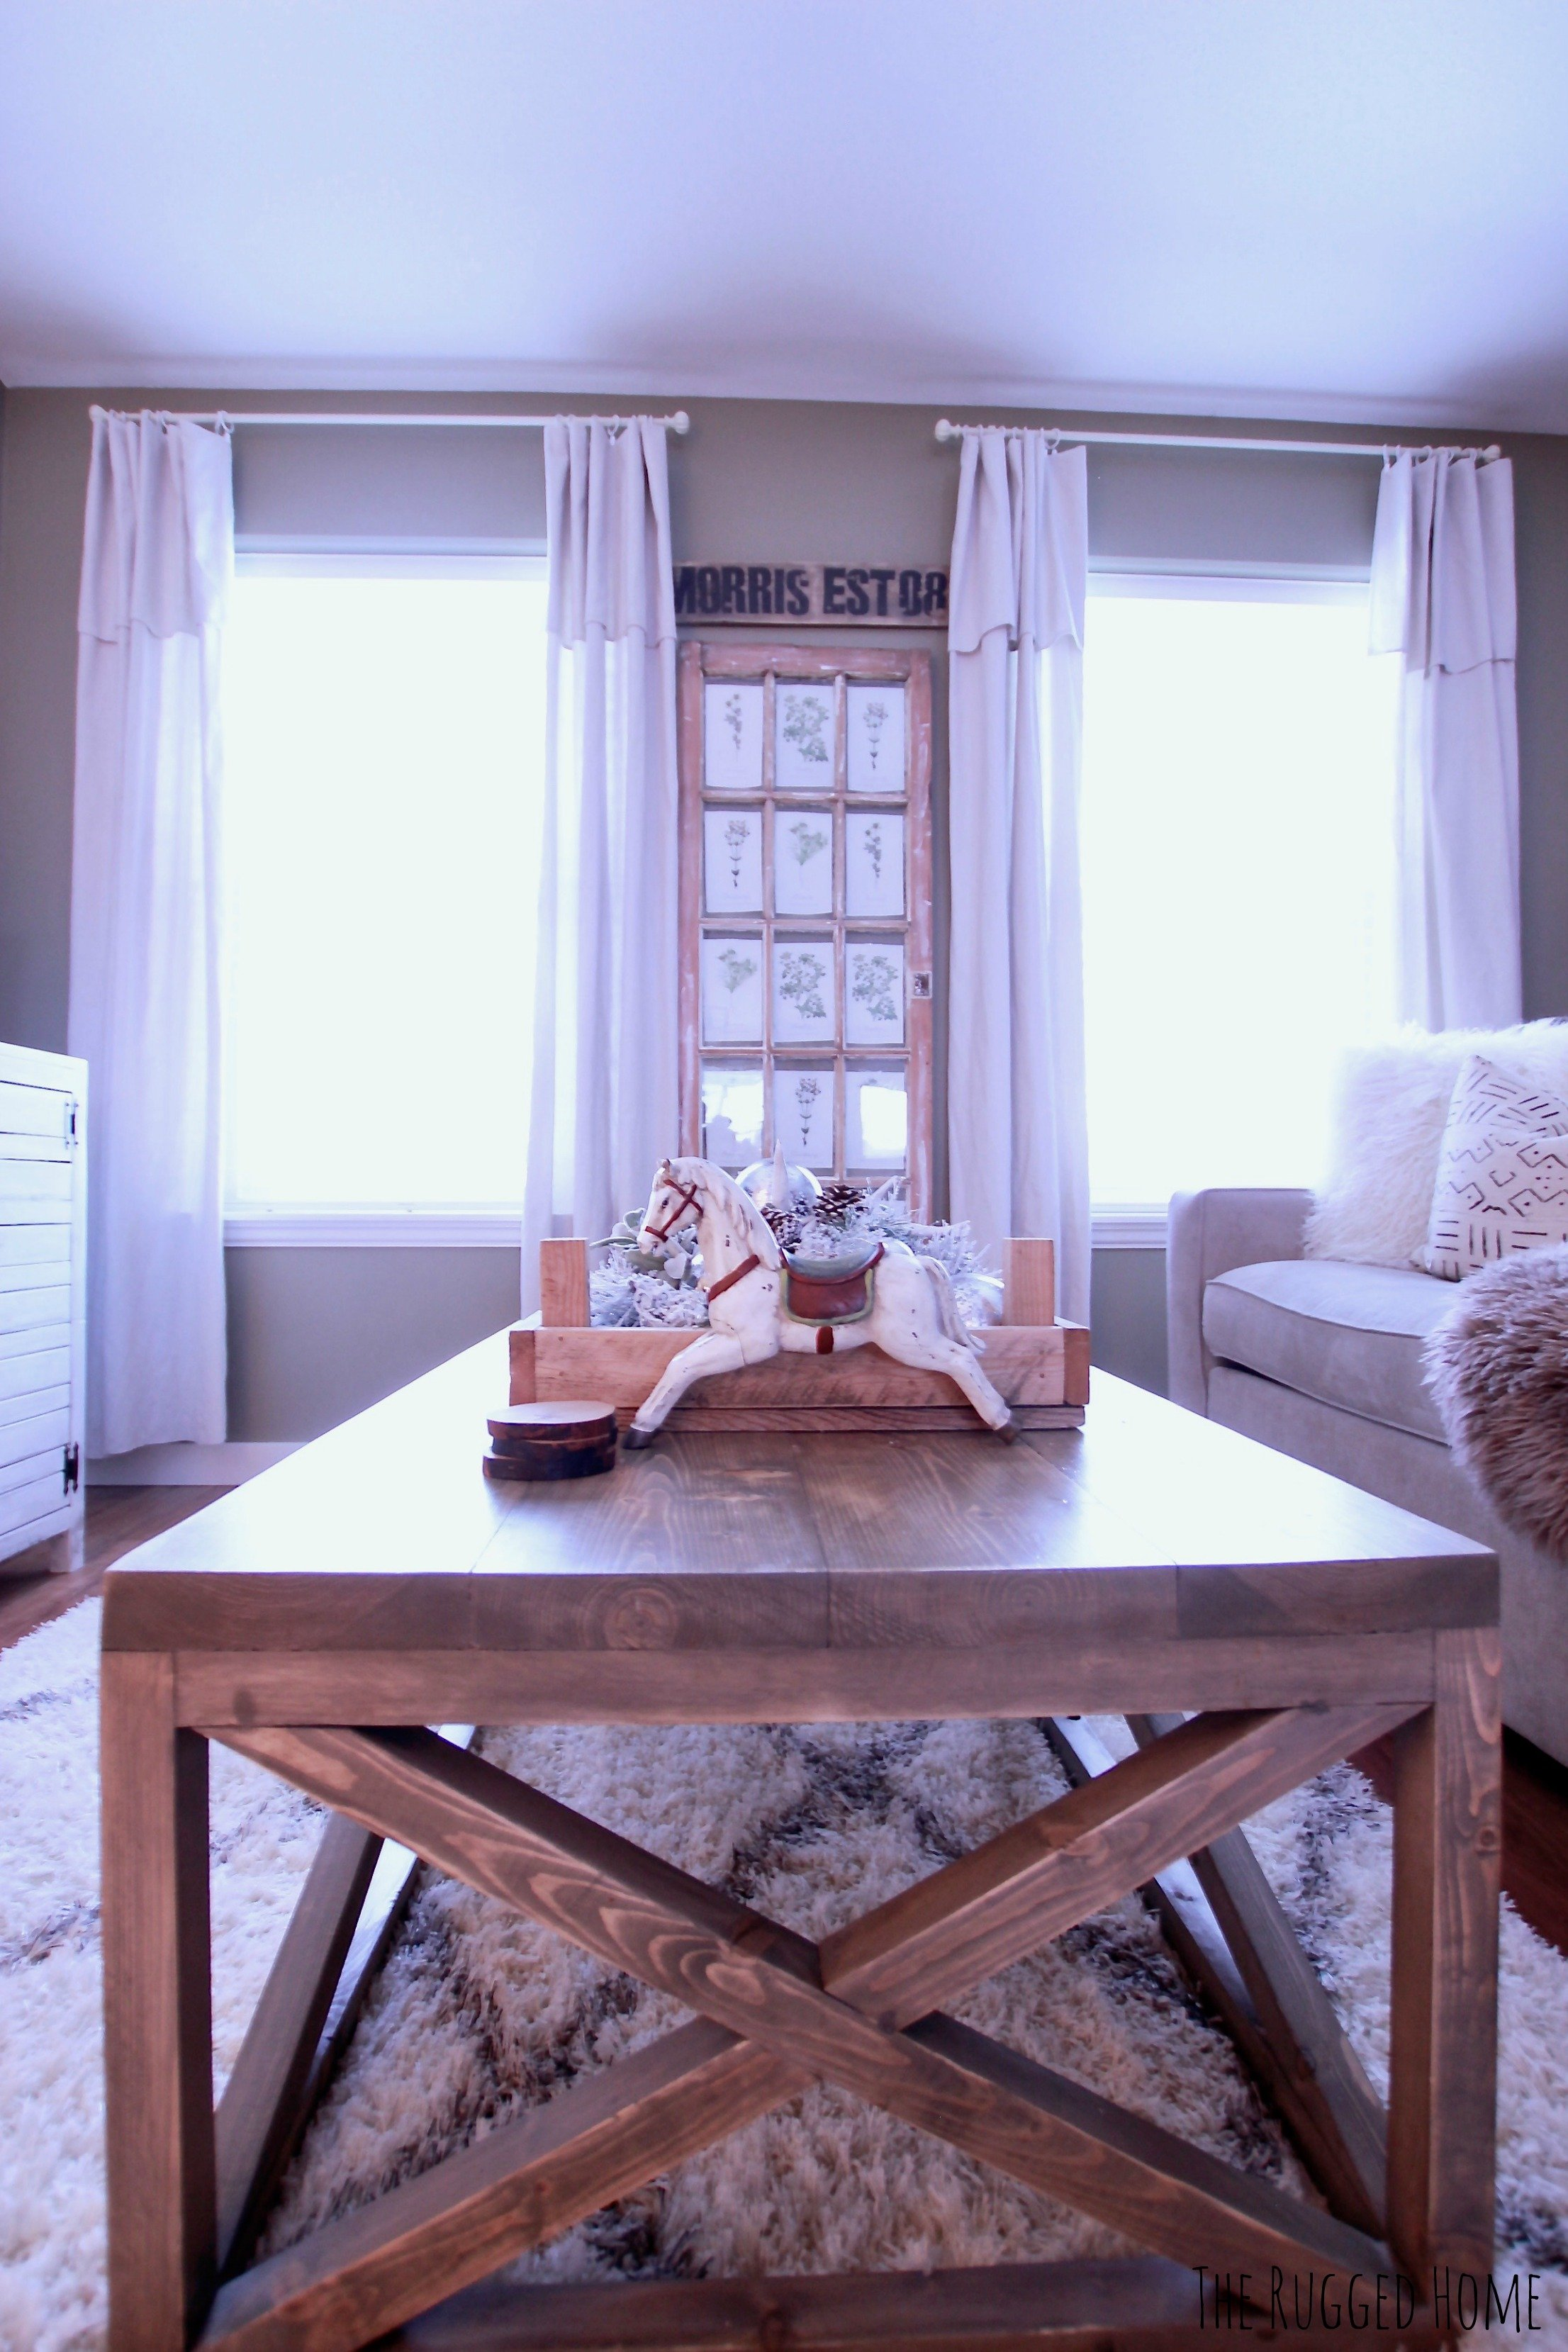 "DIY The Easiest Farmhouse Drop Sheet Curtains Ever, Step By Step, Where To Buy Everything, How TO Make Them Look Good, Under 50 Bucks For 4 Panels at 108"" Length! www.whitepicketfarmhouse.com"